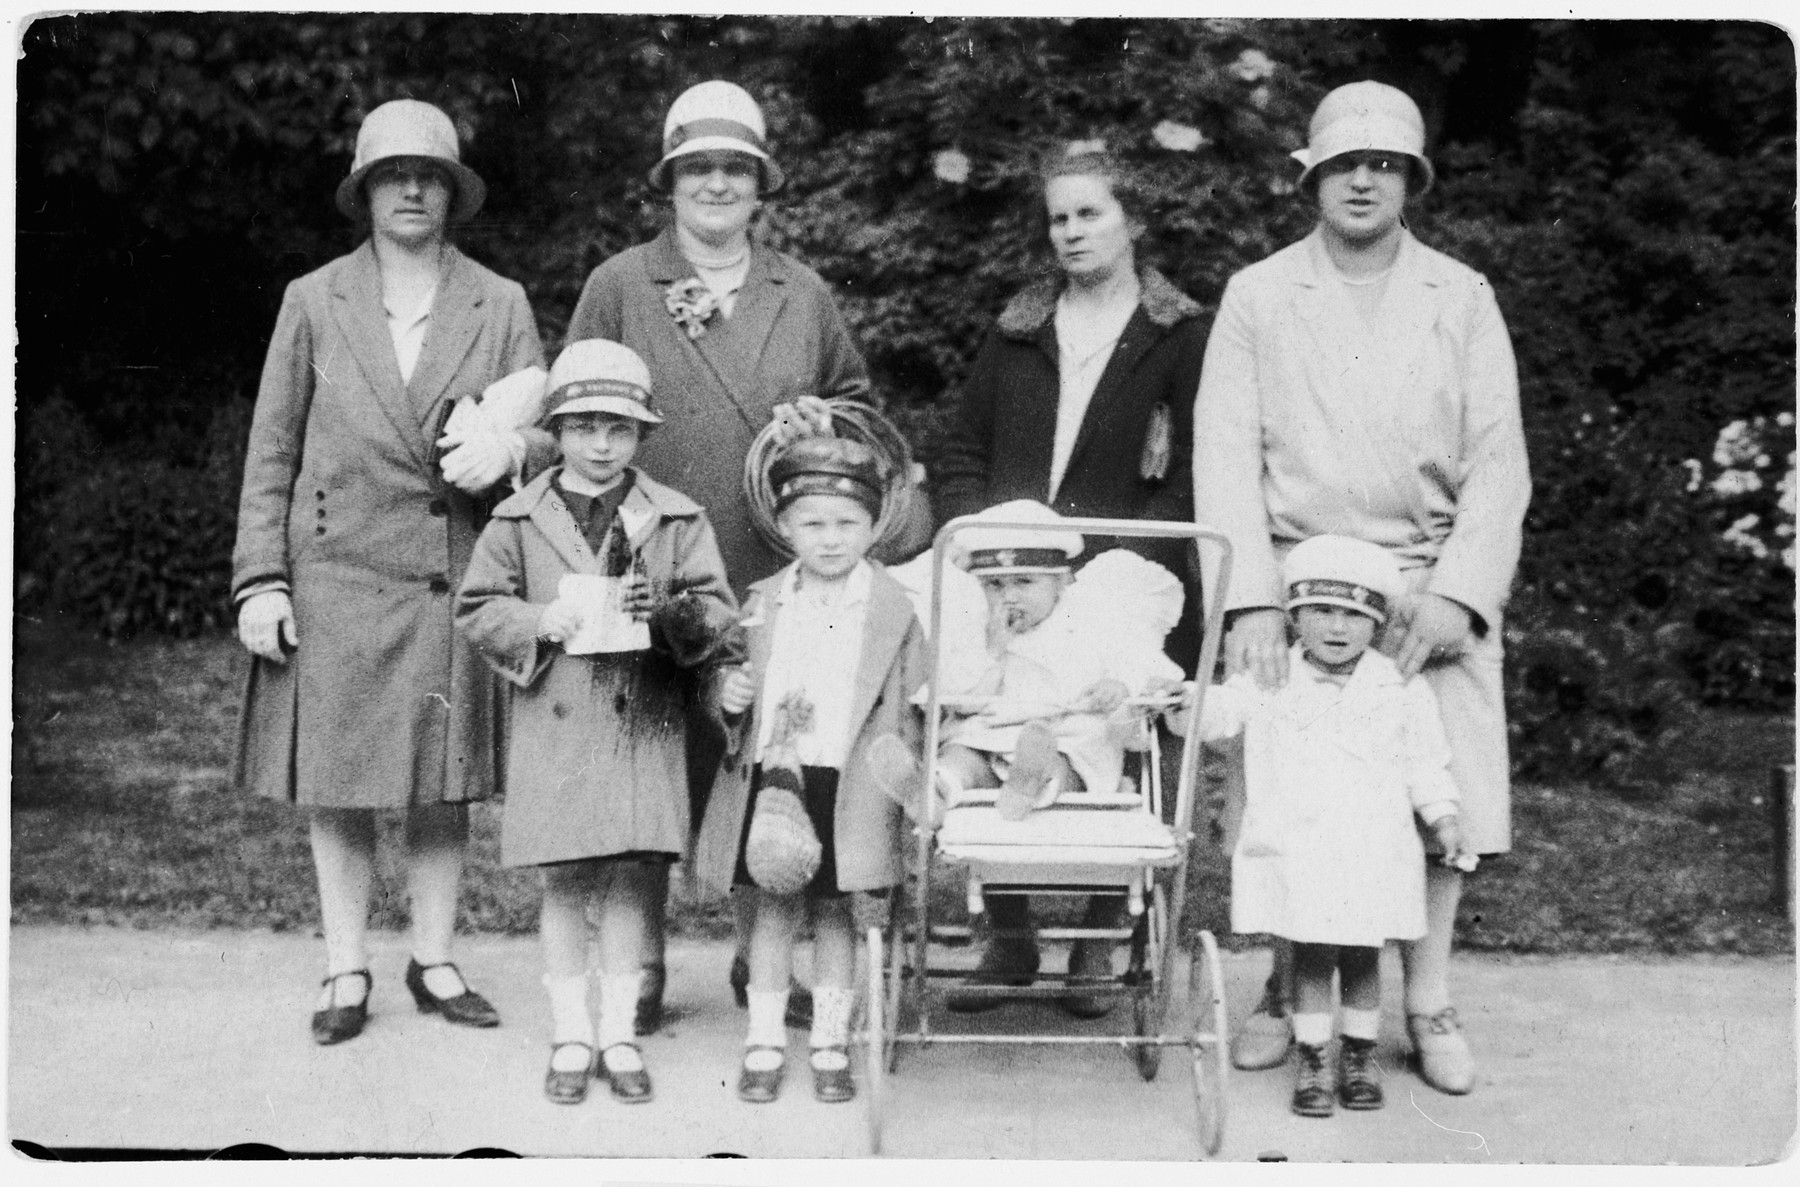 A group of mothers pose together in a park with their young children.  Pirsoka Rosenberger is on the far left with her hands on the shoulders of her daughter Judith.  Next to her is her nanny Marcelle pushing her younger daughter Olga in her stroller.